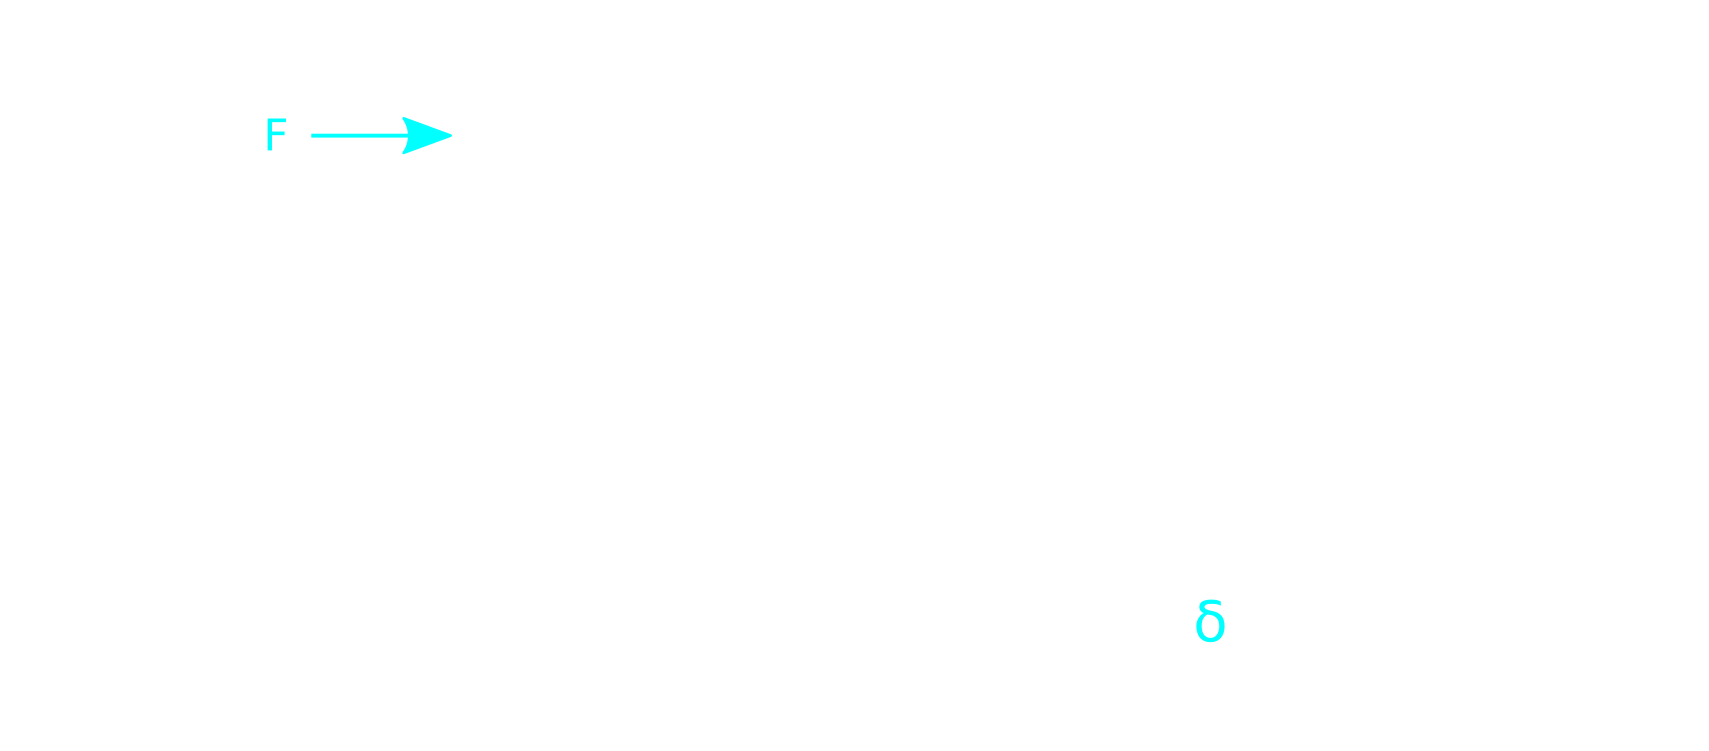 Beam deformation skecth